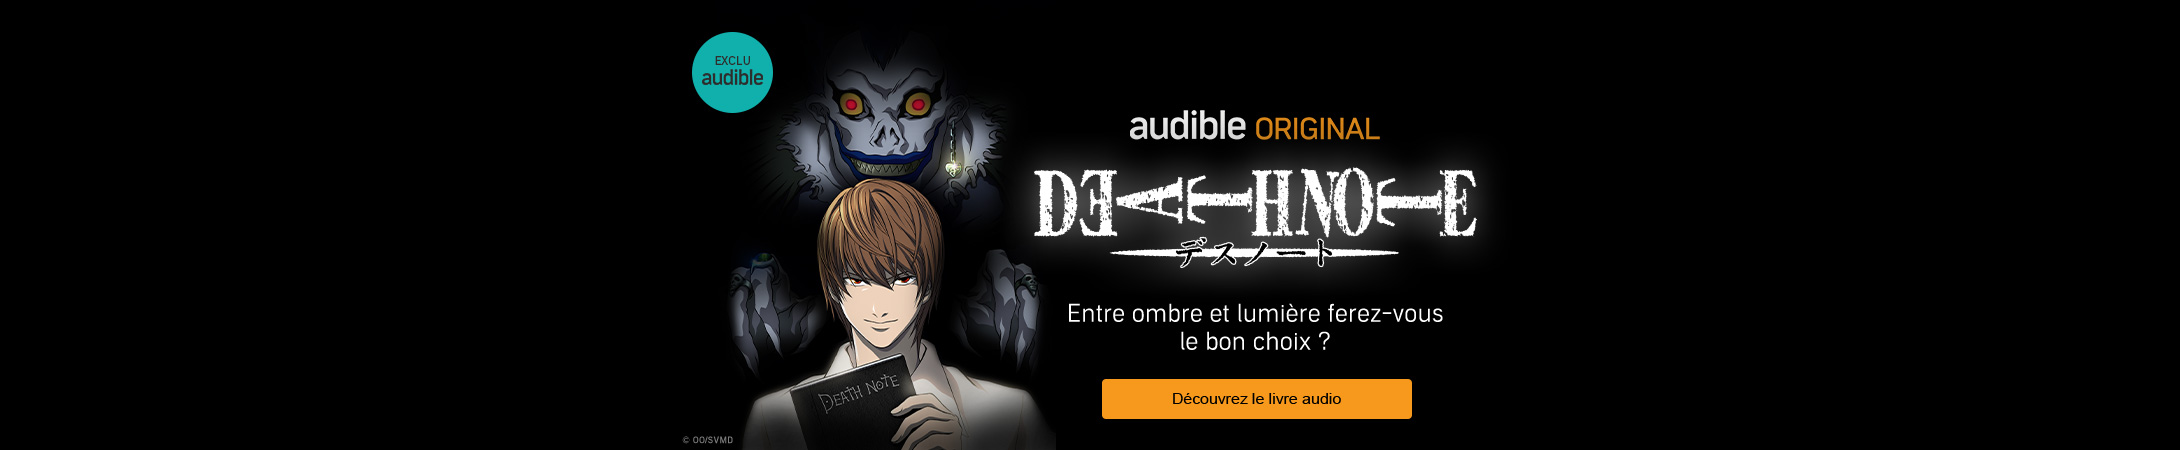 Audible Original : Death Note